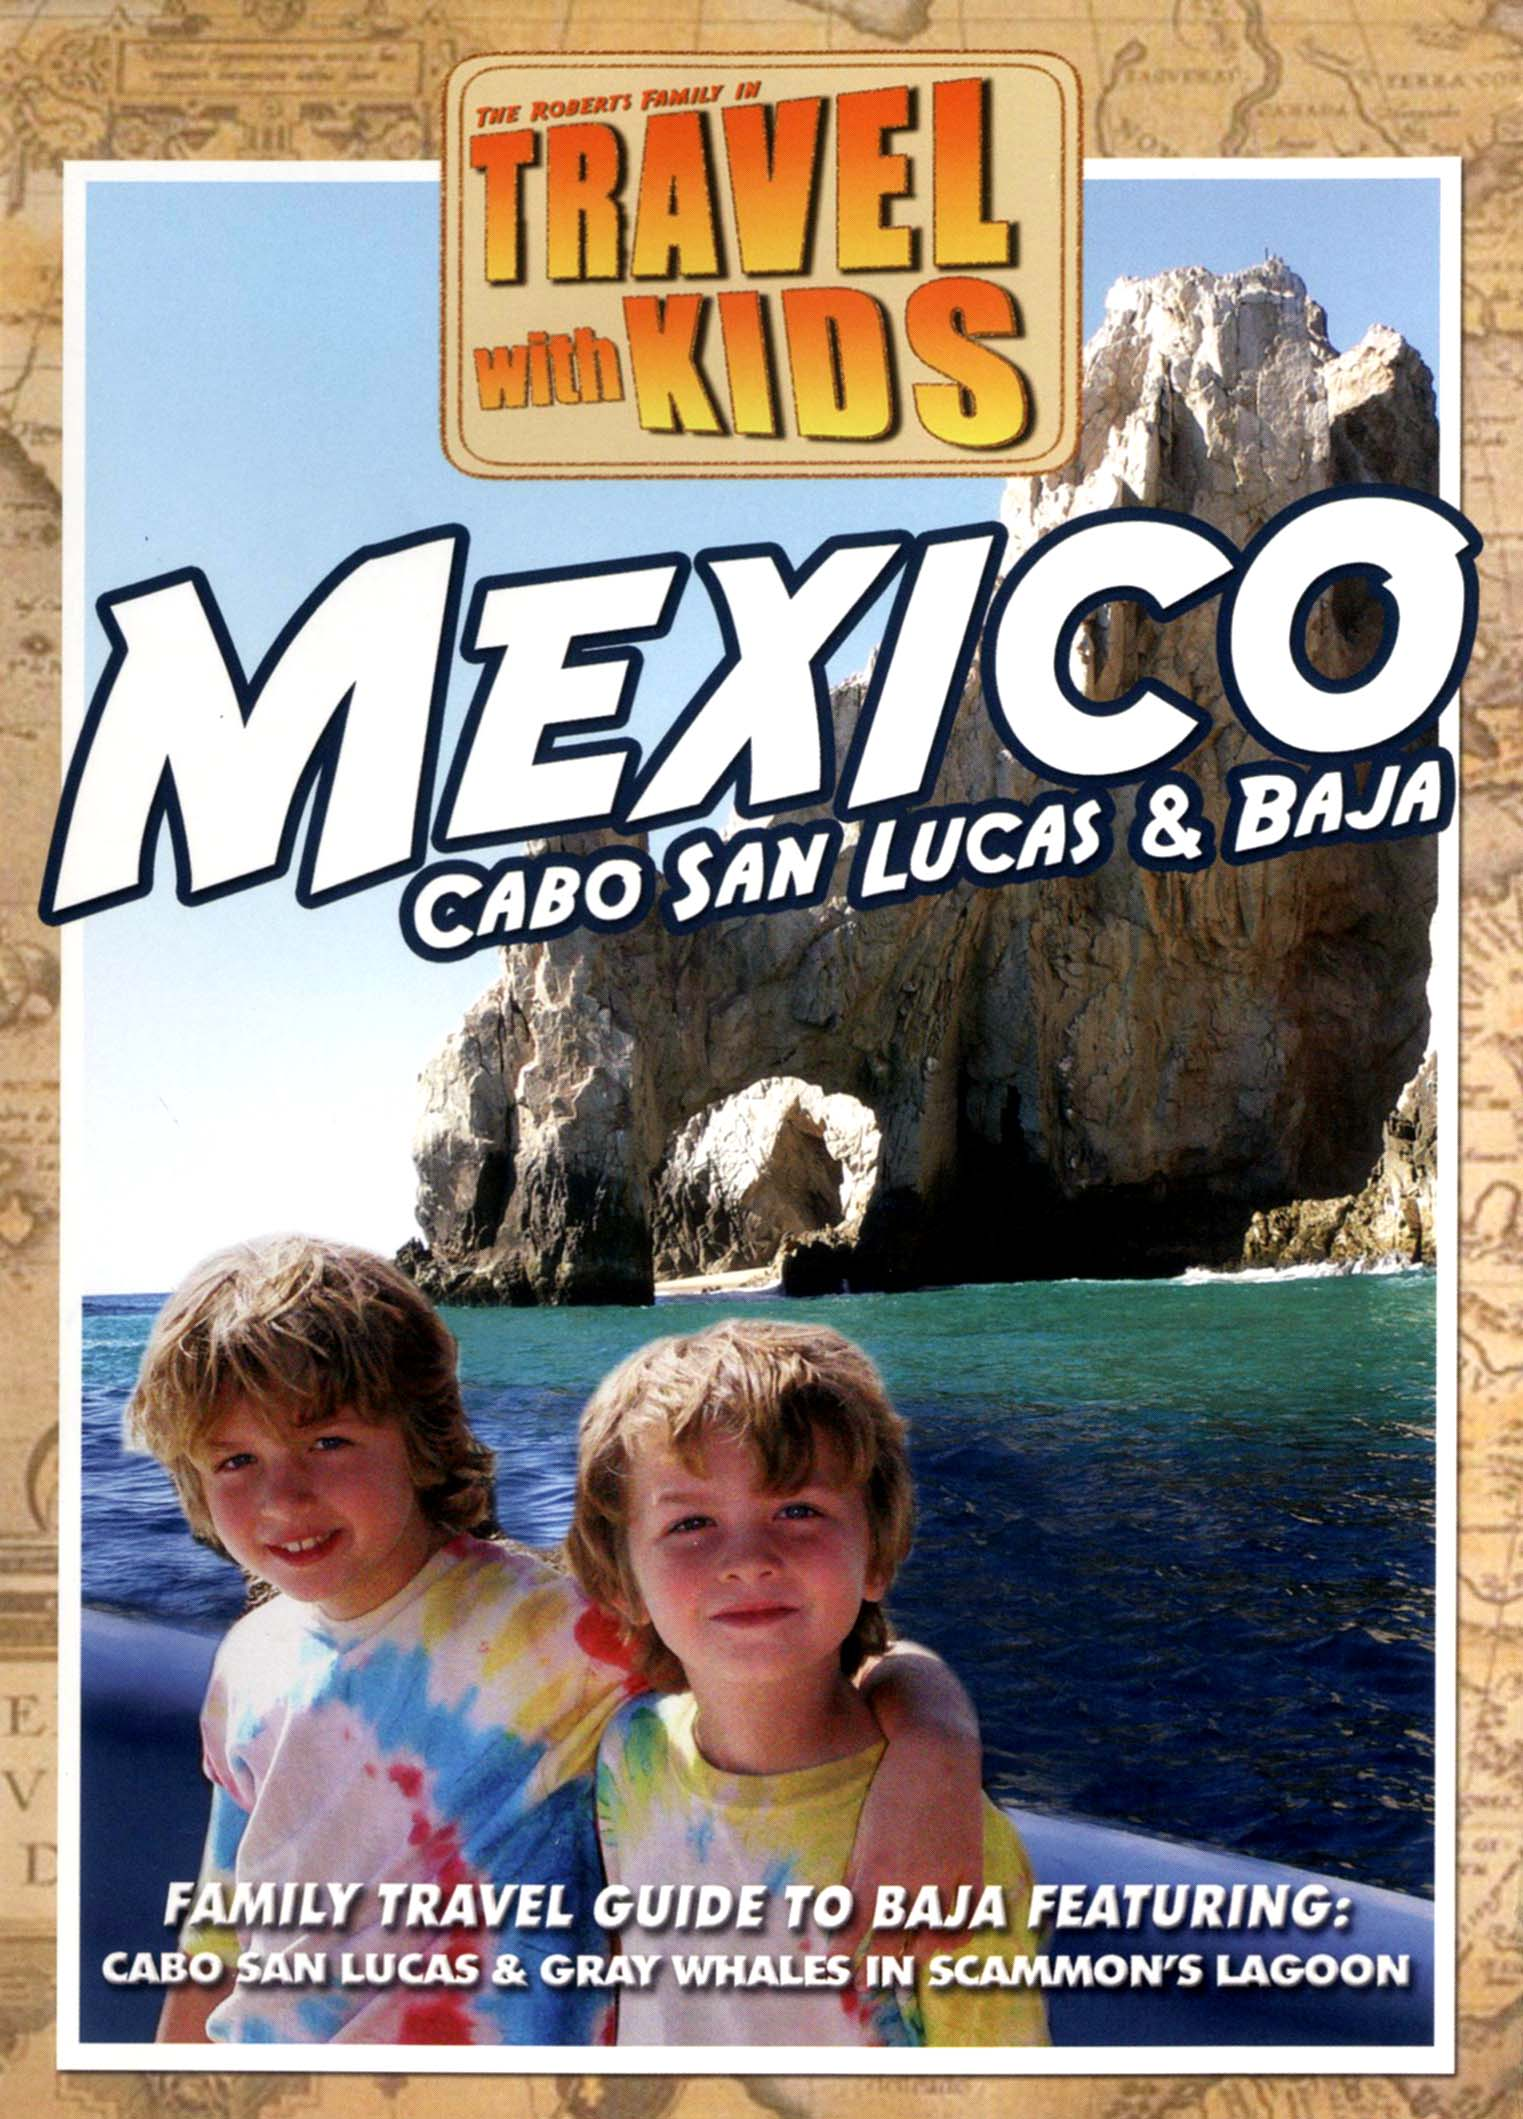 Travel with Kids: Mexico - Cabo San Lucas & Baja